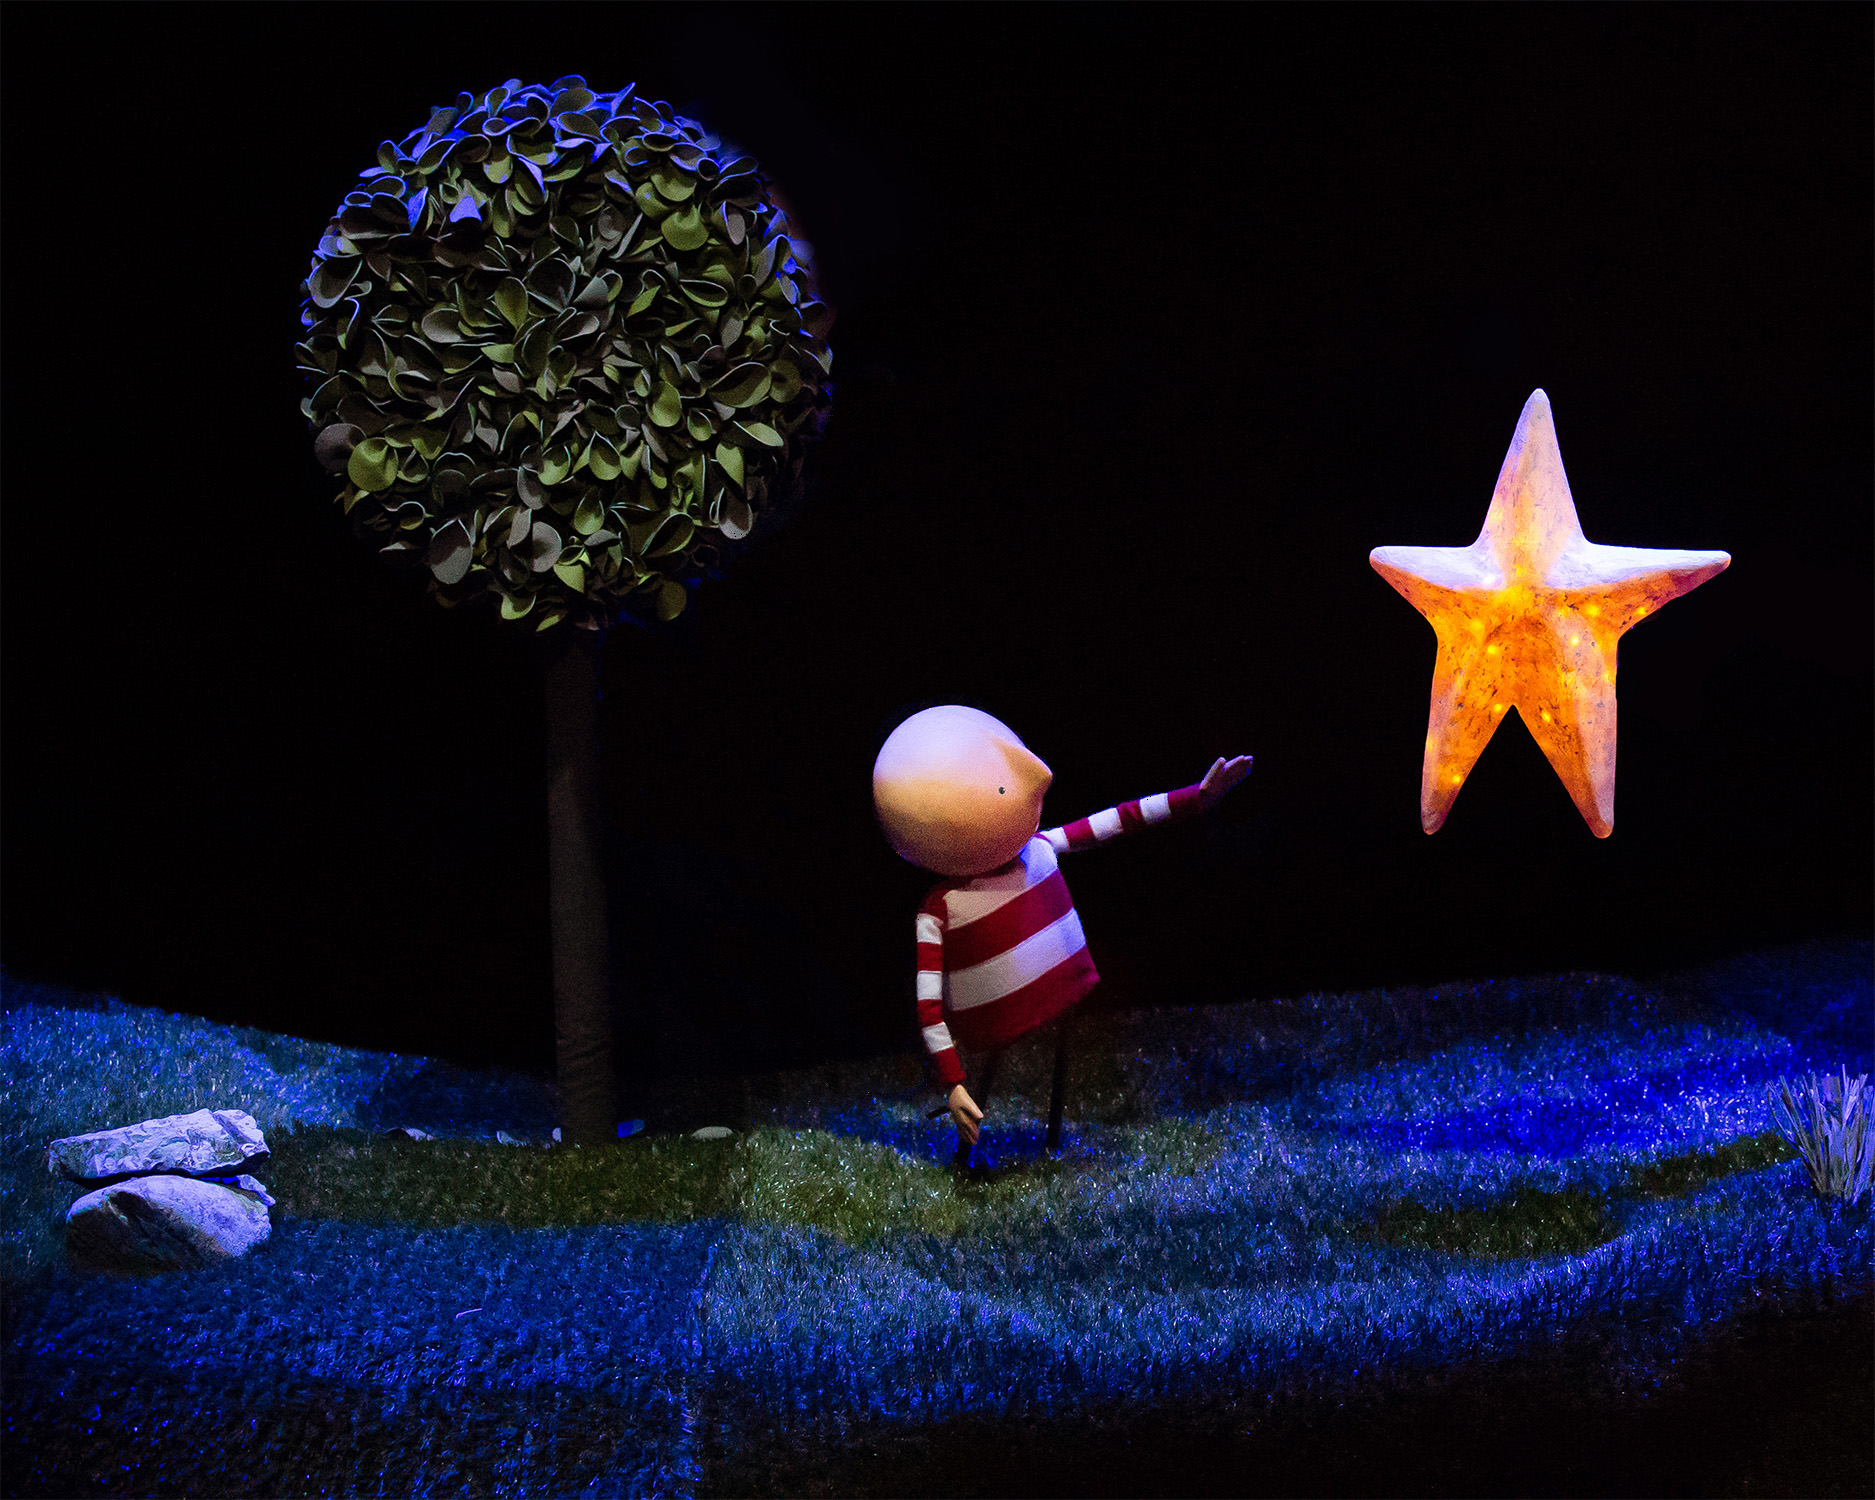 001KM Boy reaching for Star Anita Murphy 1.jpg